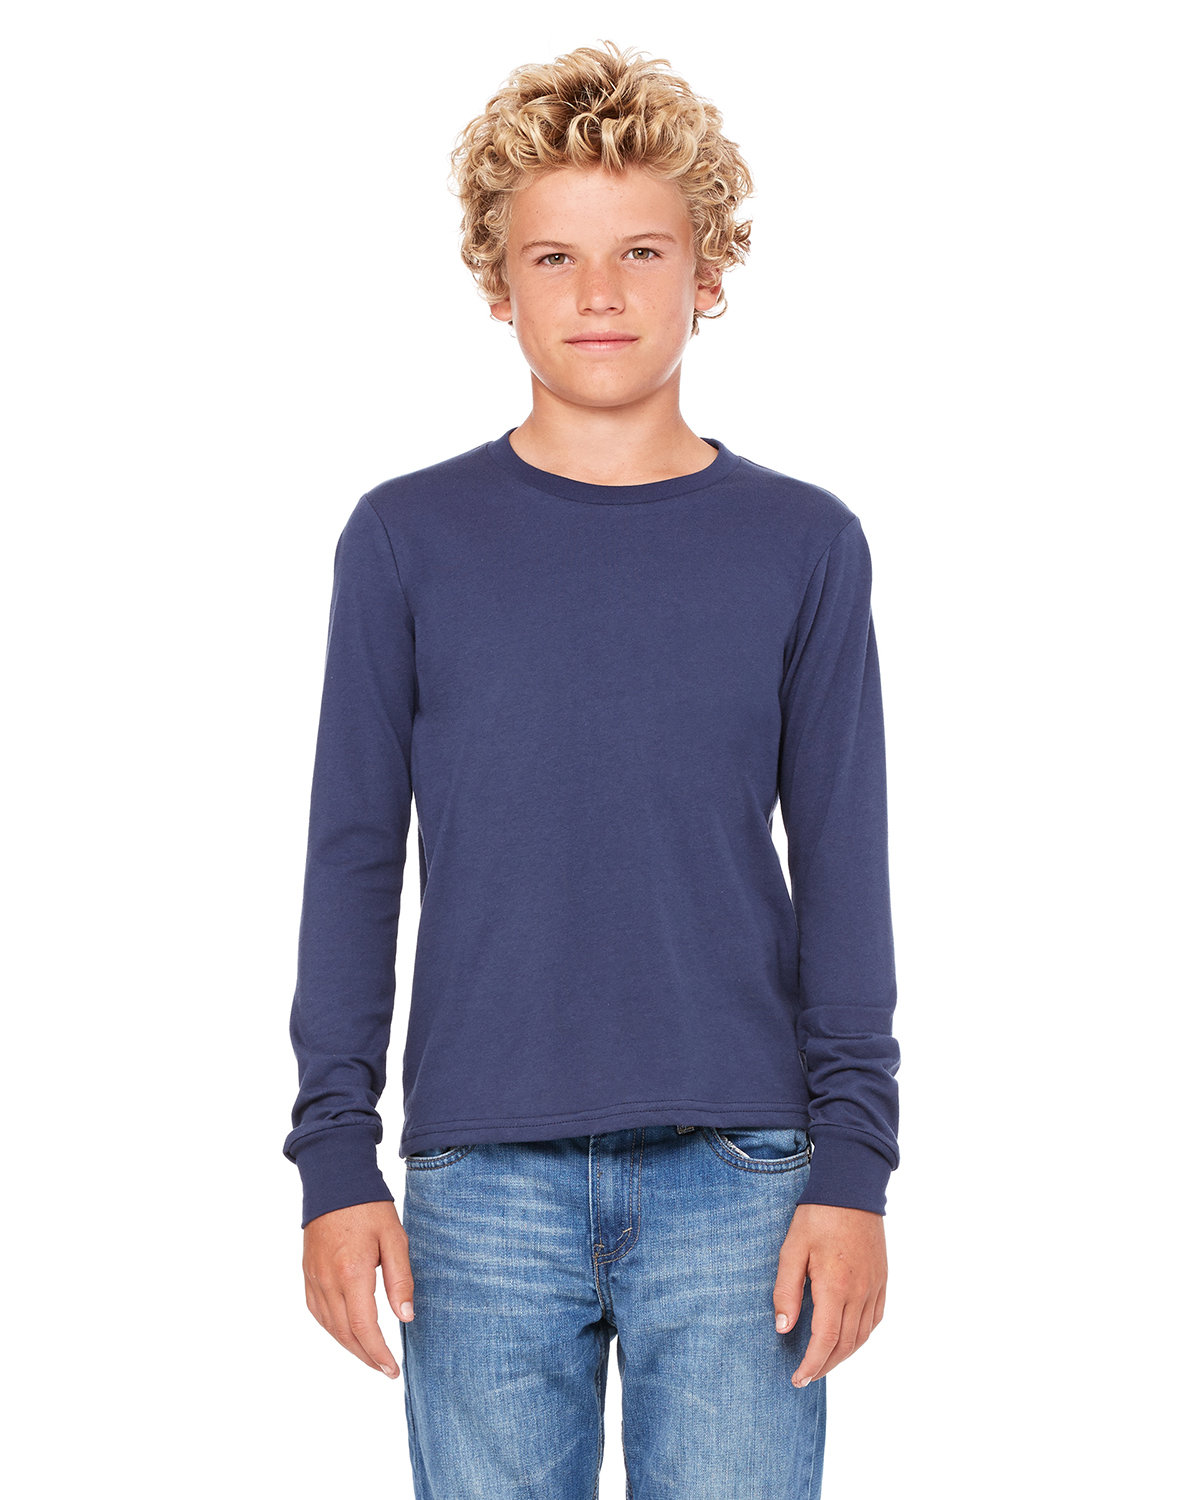 Bella + Canvas Youth Jersey Long-Sleeve T-Shirt NAVY